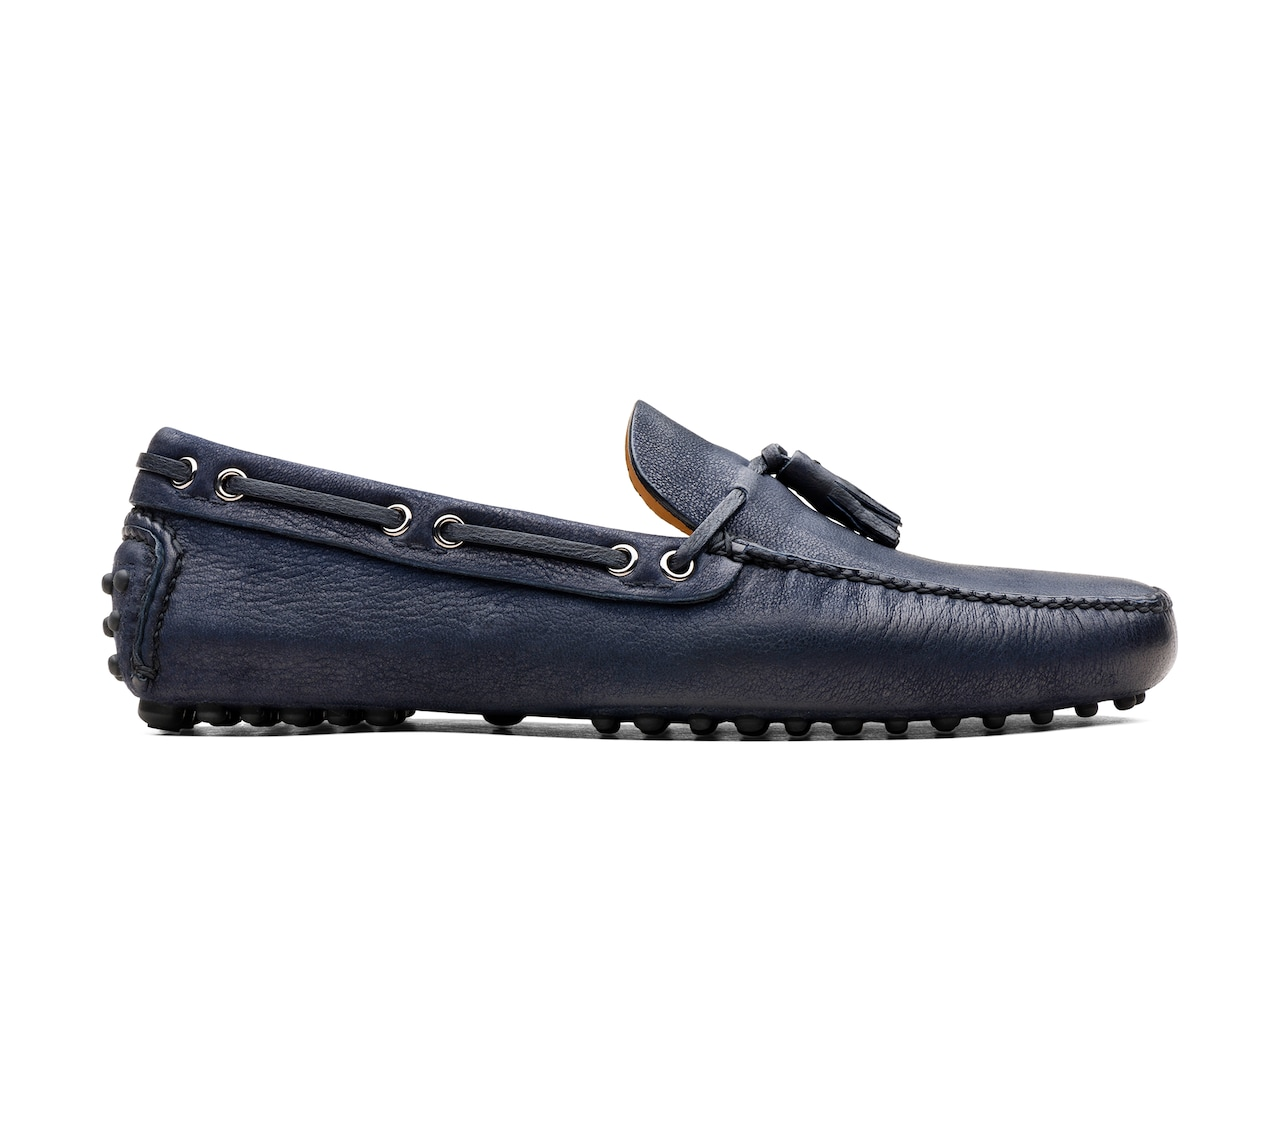 SOFT ANTIQUE GOAT LEATHER DRIVING SHOES BLUE